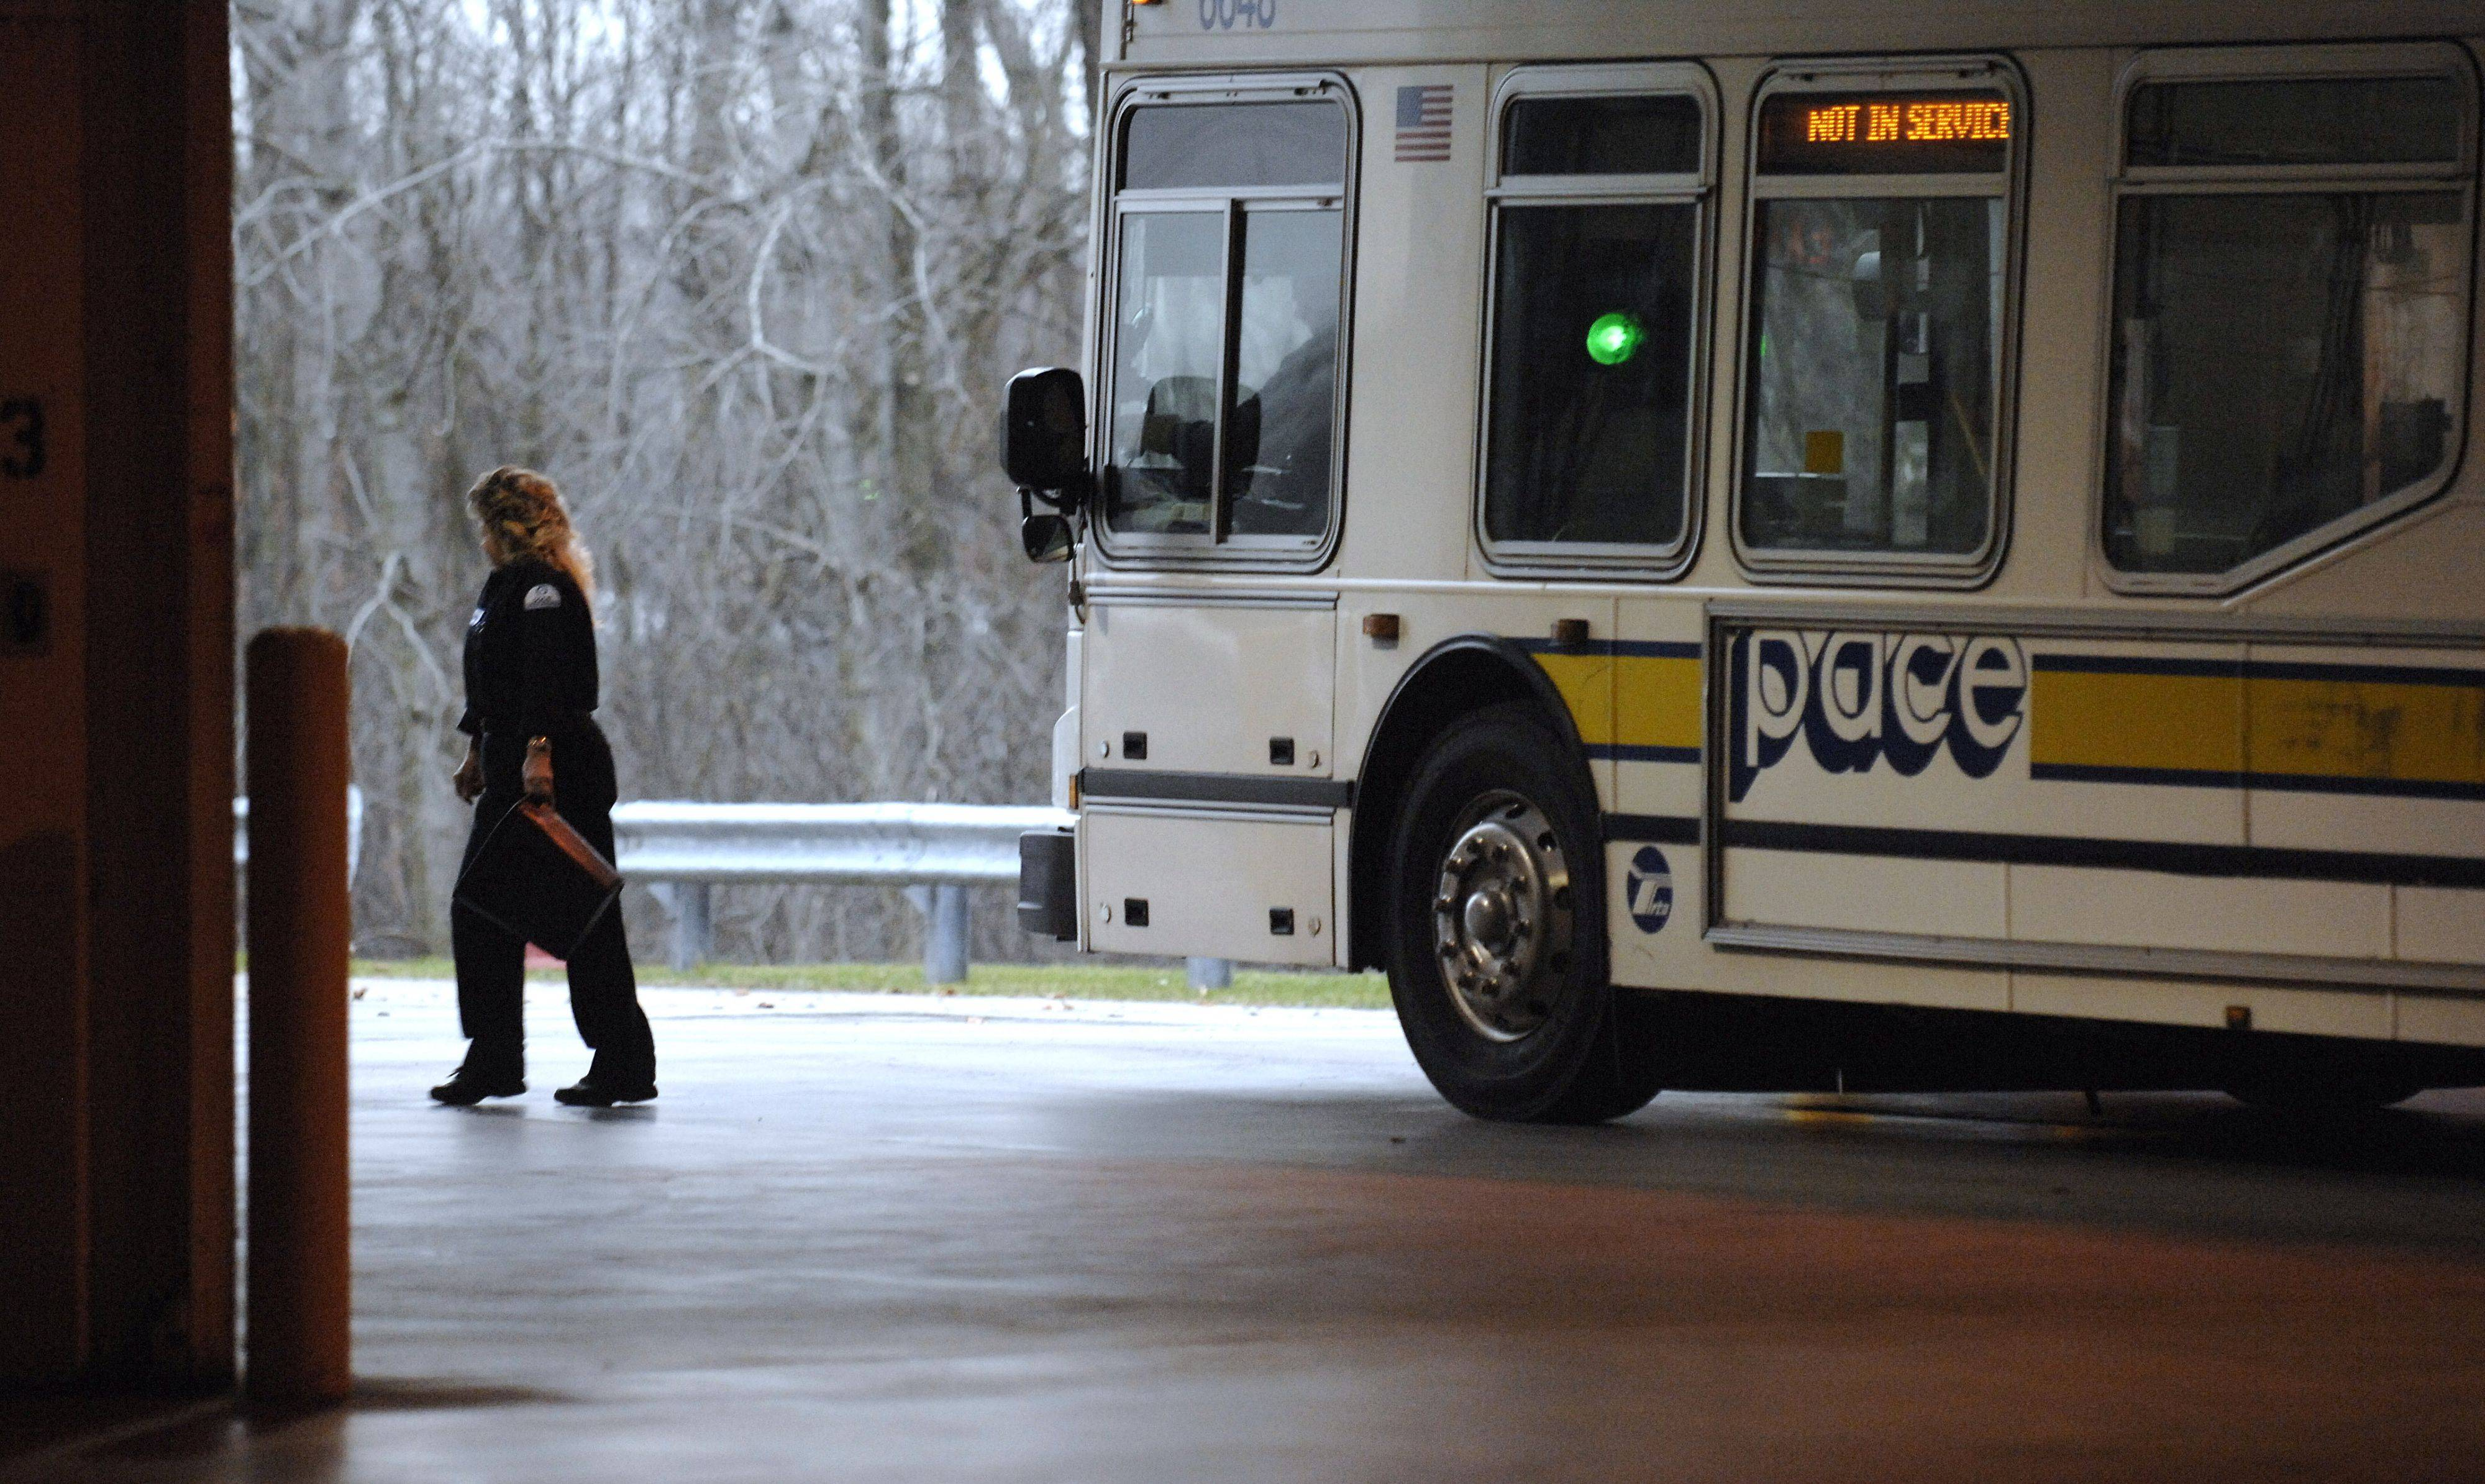 Service worker Audrey Huebner walks away from a bus after talking to the driver departing the Elgin garage for the next shift.